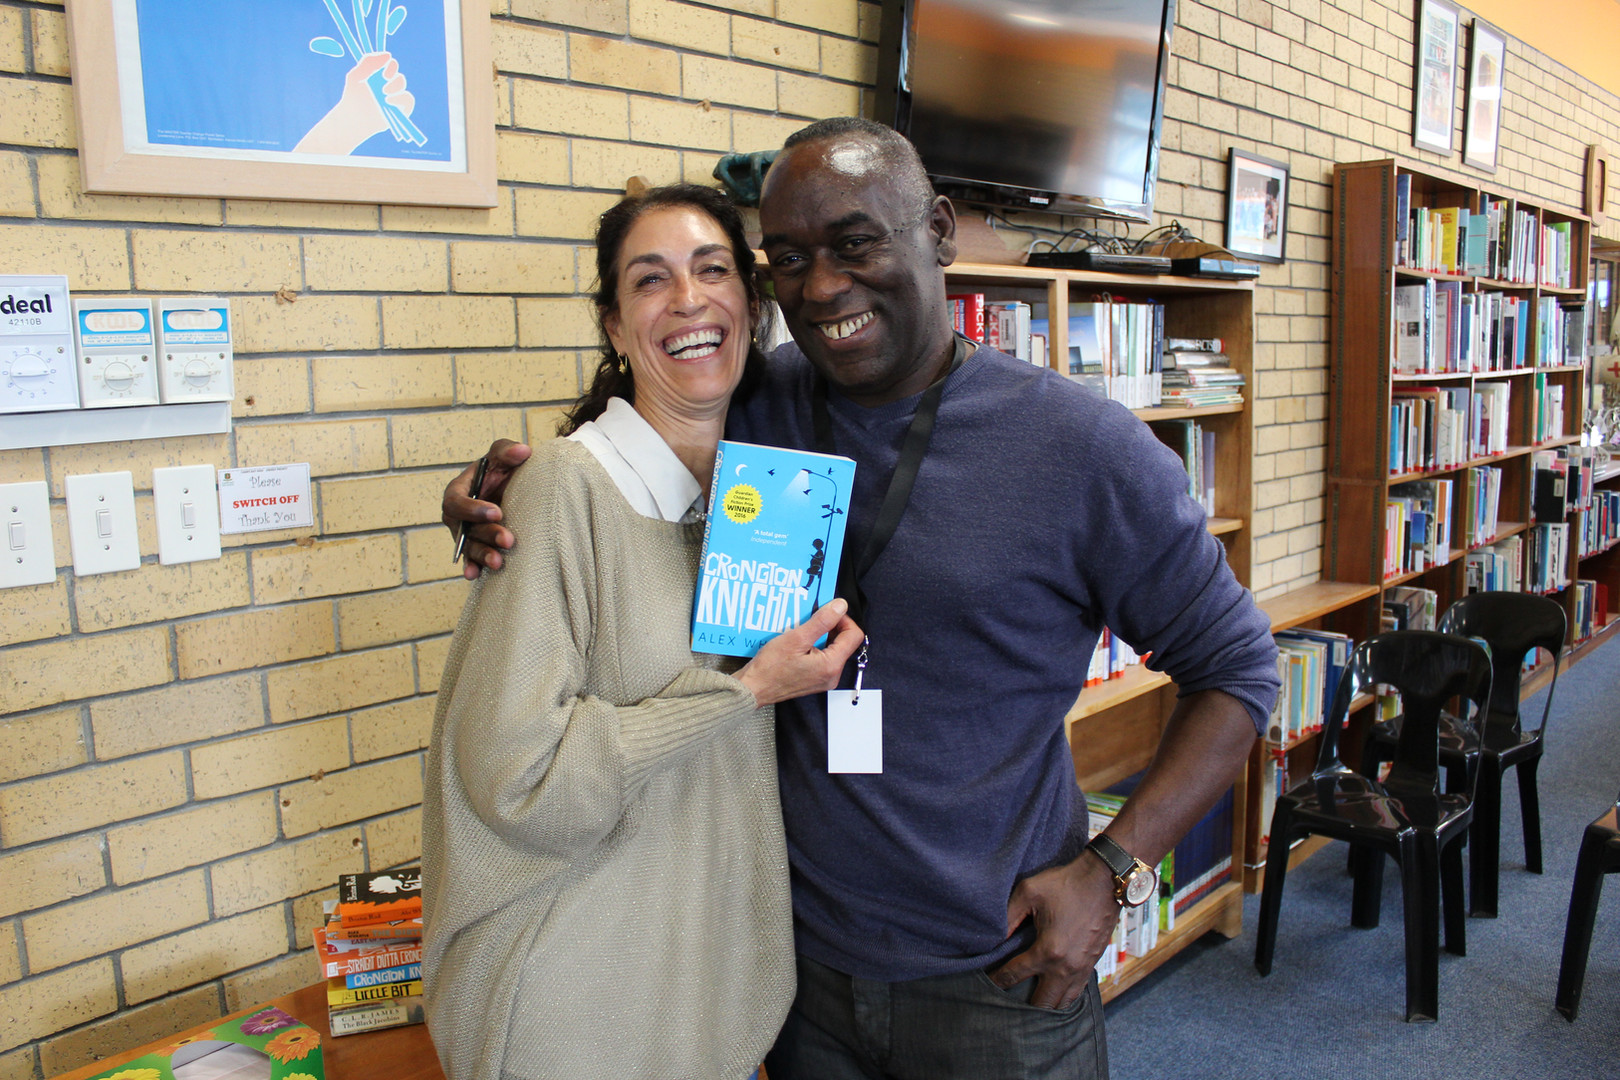 With a happy teacher in Cape Town, South Africa.